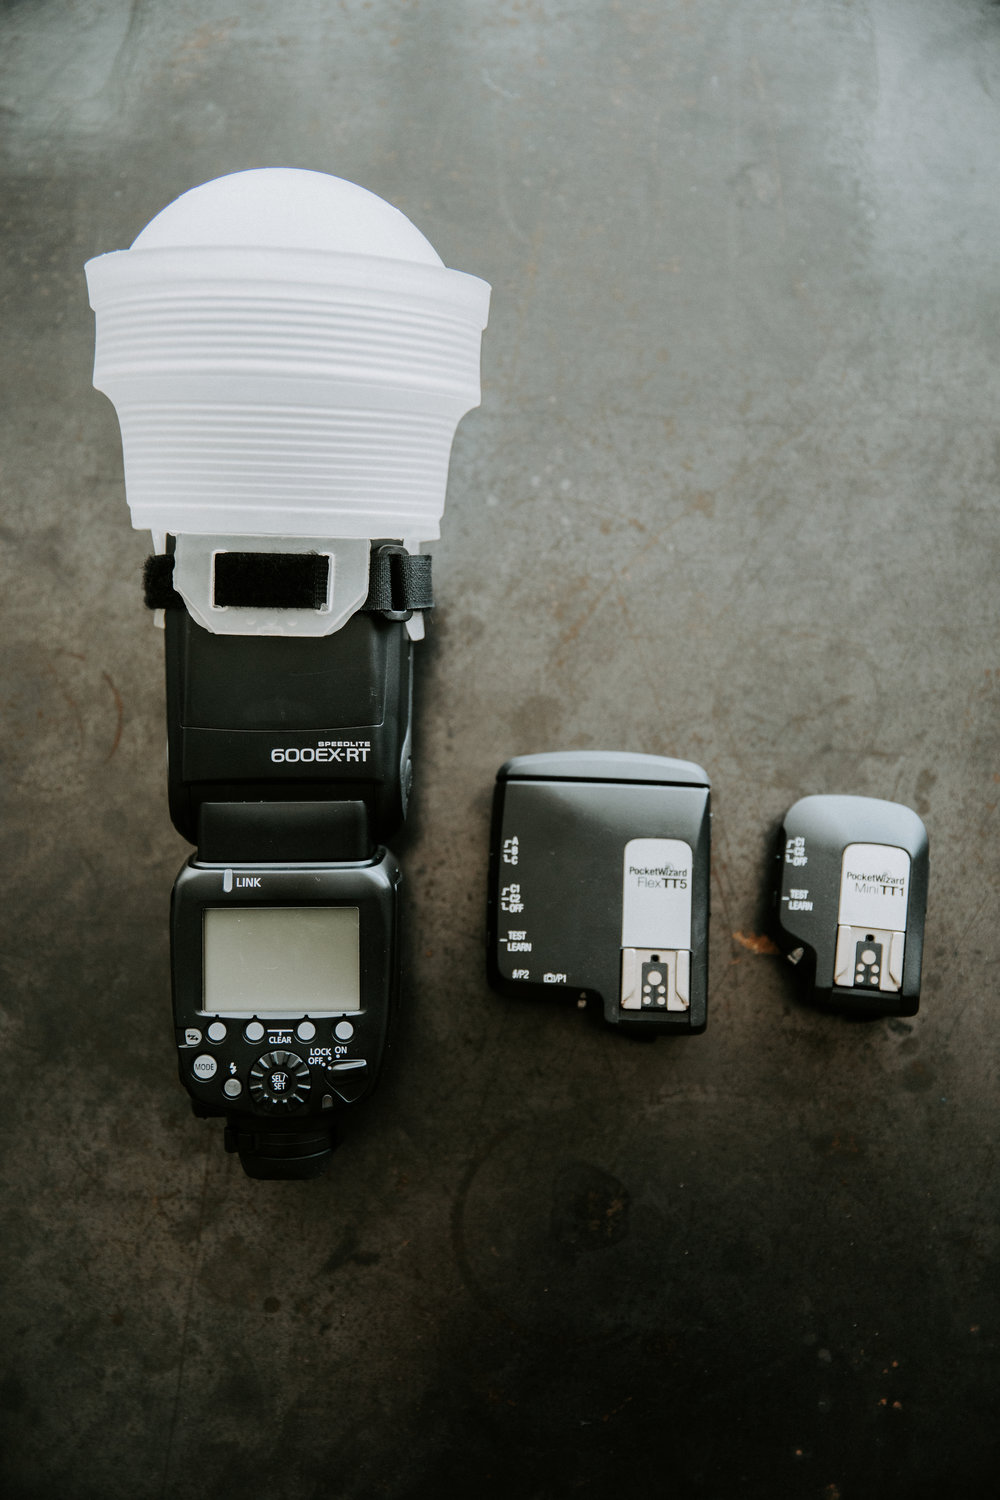 Canon 600EX-RT Speedlite & Pocket wizards for off camera flash.